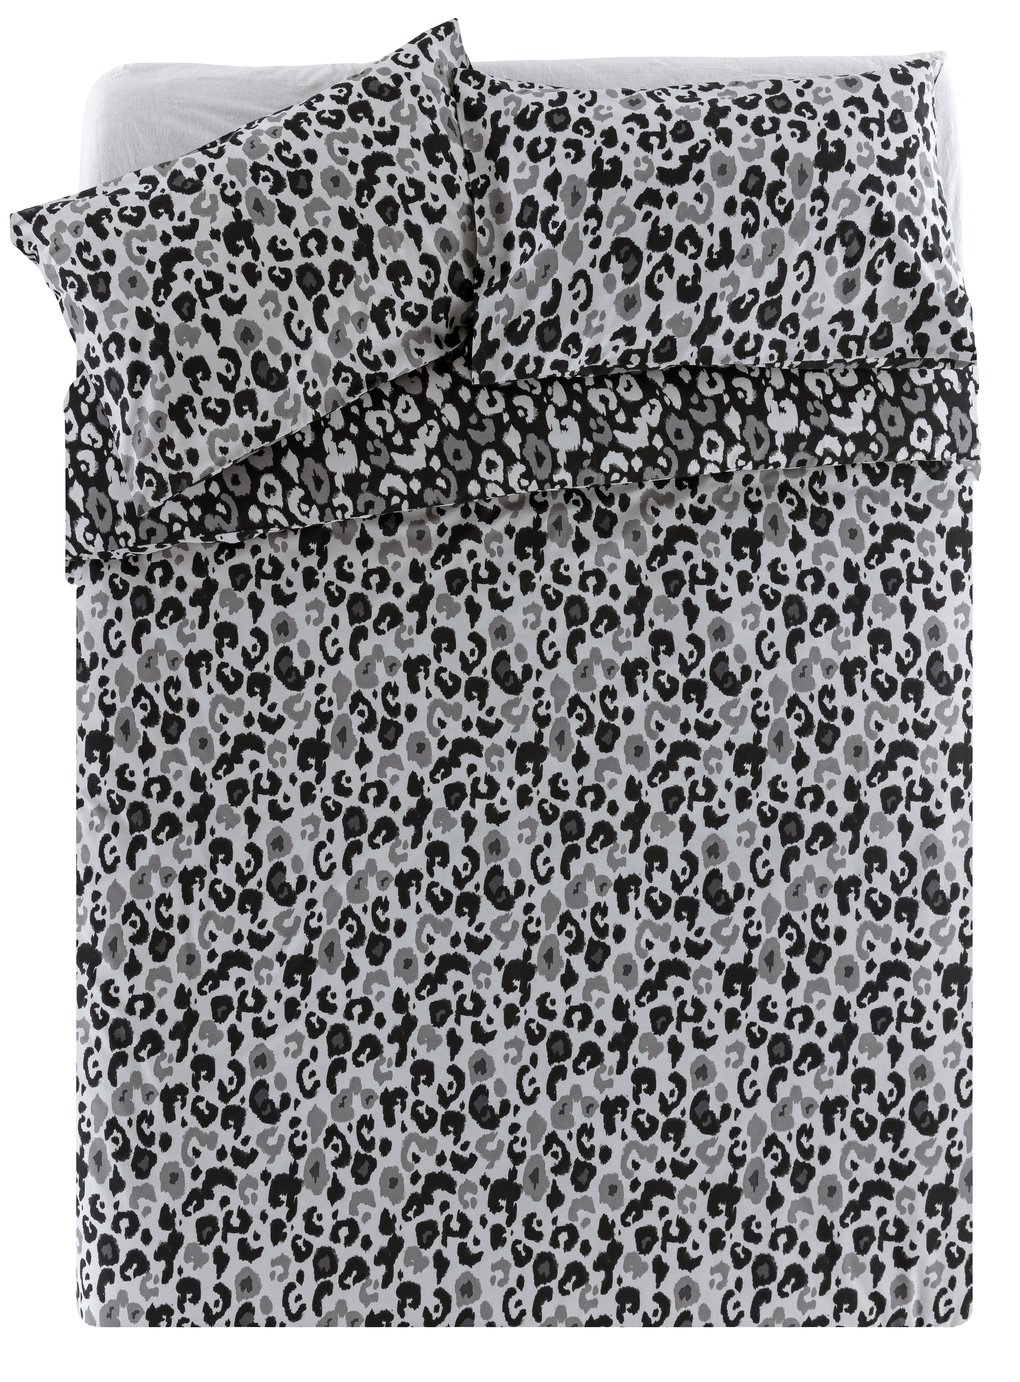 Argos Home Leopard Print Bedding Set - Double